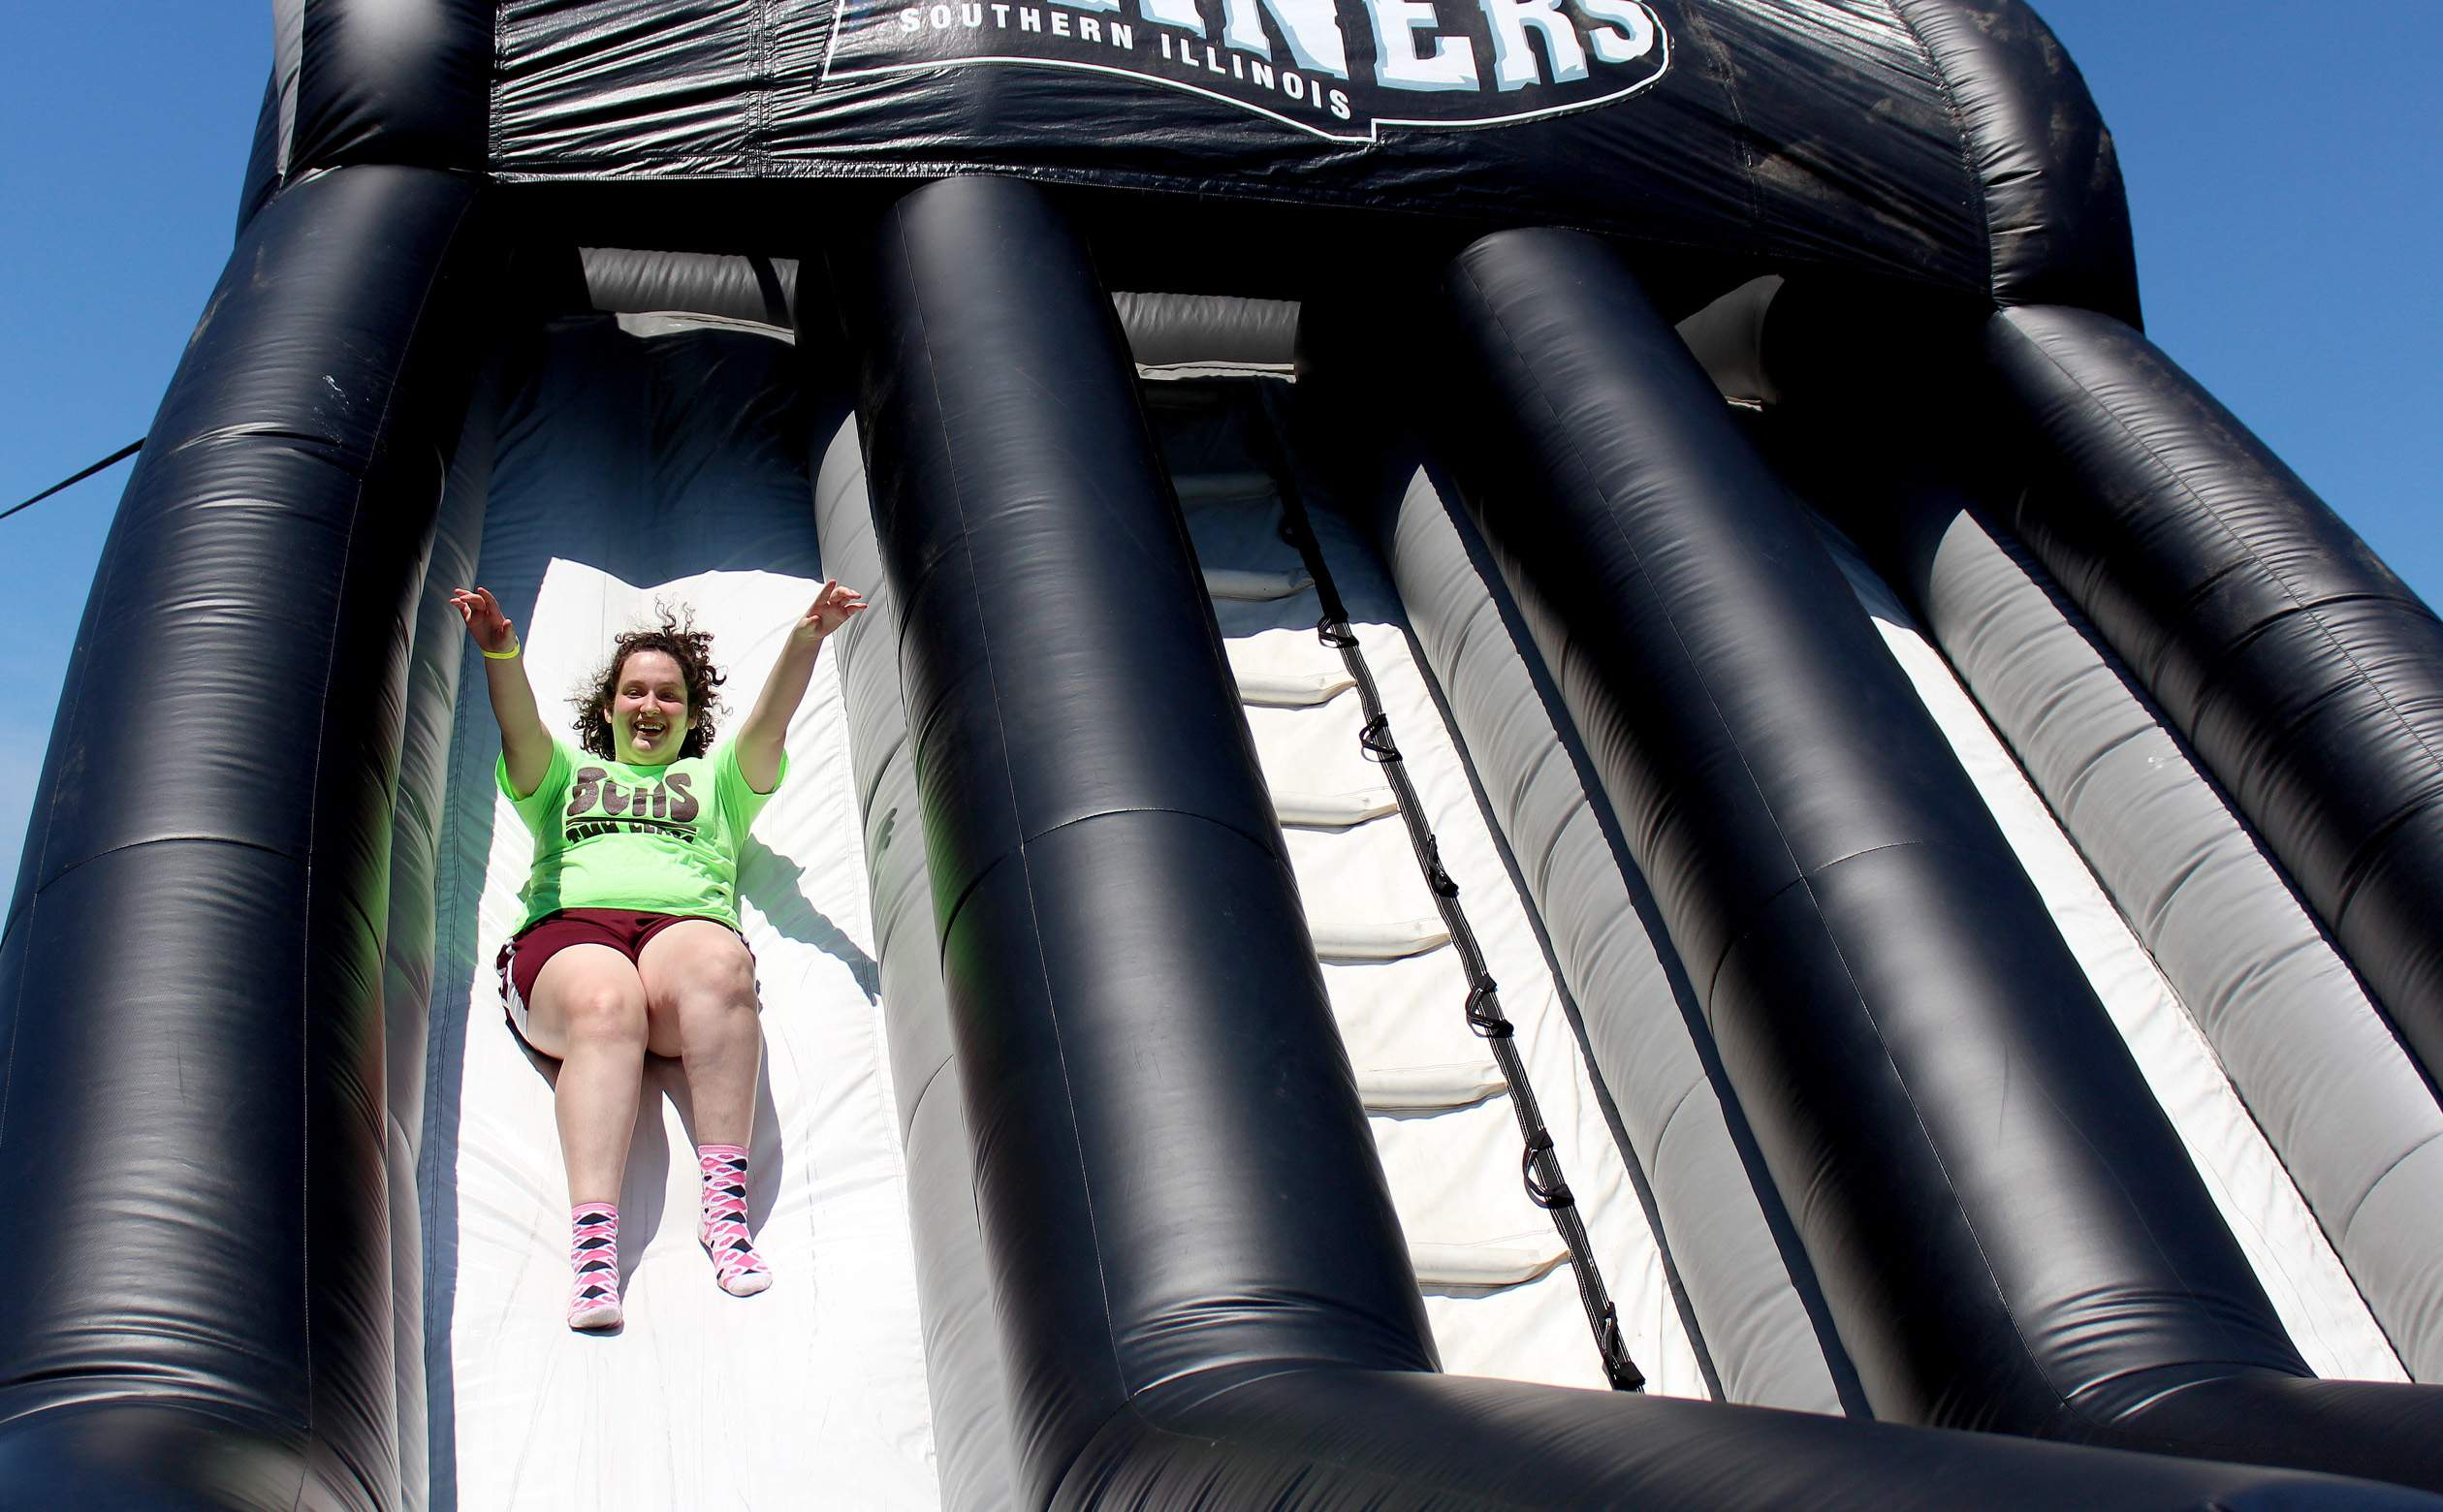 Shawna Melvin, a continuing senior at Benton Community High School, races down the inflatable slide at Rent One Park in Marion Tuesday. Melvin and hundreds of other students from around the area were at the park on Tuesday to take in a Miners exhibition game as part of the park's Education Day.